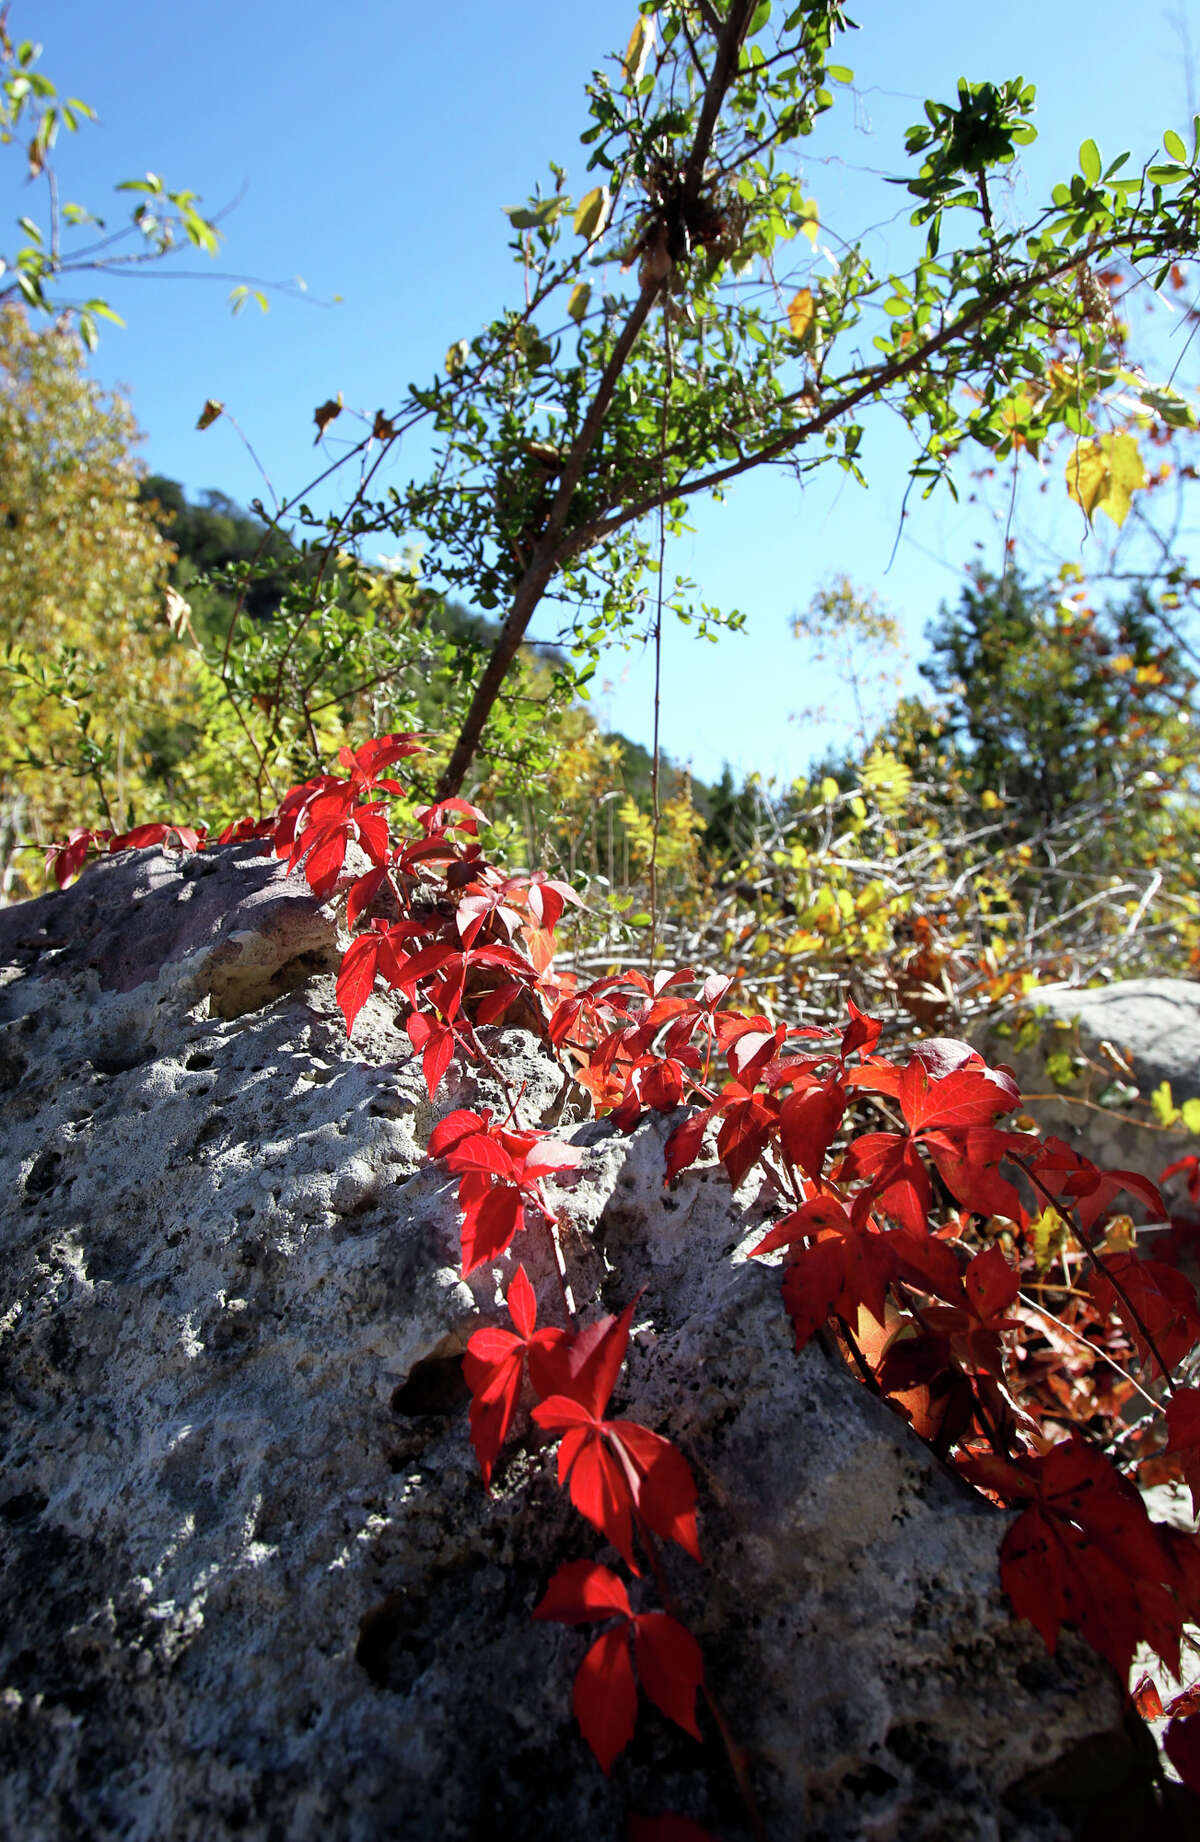 Lost Maples STate Natural Area on November 7, 2012.